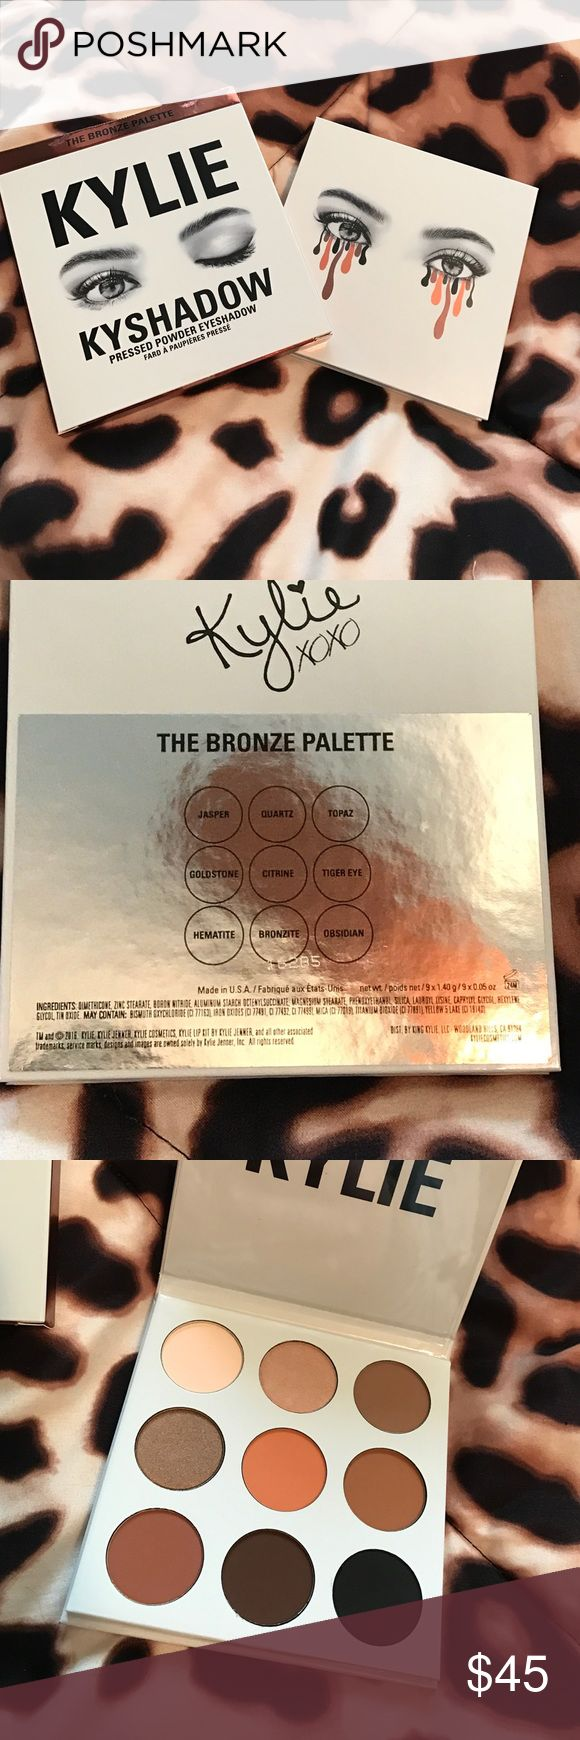 Brand new Kylie cosmetics bronze palette Brand new never been used Kylie cosmetics bronze palette. Colors look beautiful but the kind of colors that work for my skin tone. I purchase everything from Kylie's website, everything is 100% authentic Kylie Cosmetics Makeup Eyeshadow